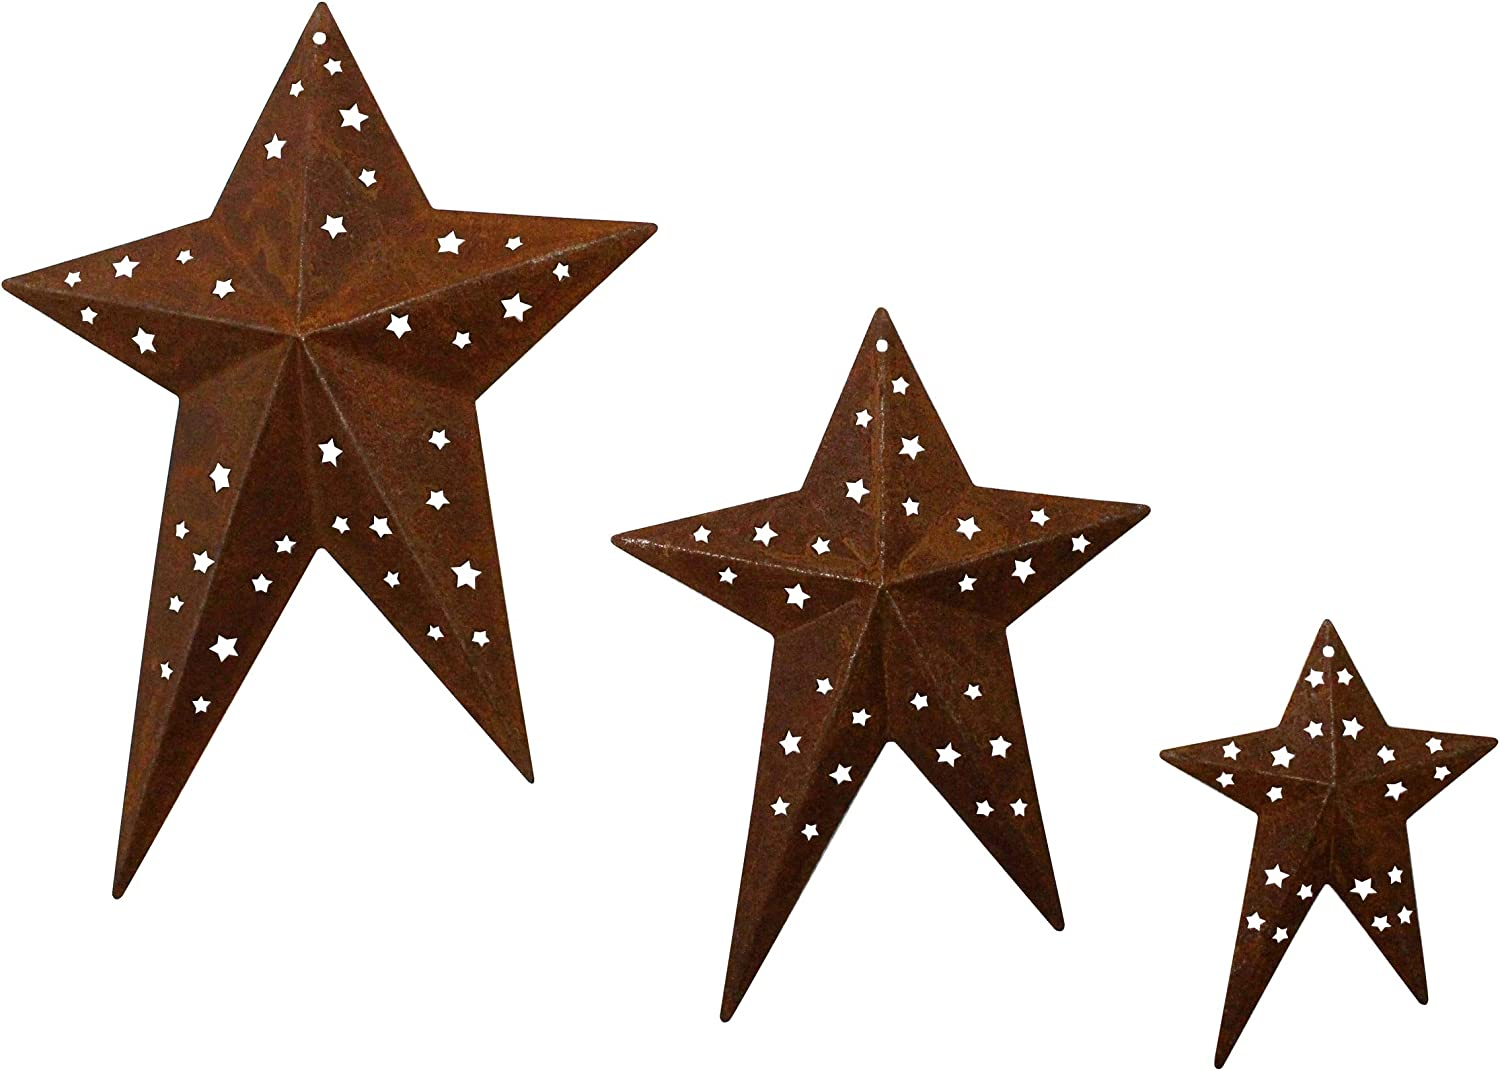 CVHOMEDECO. Primitives Rustic Vintage Gifts Rusty Punched Metal Barn Stars for Wall/Wreaths/Twigs Decor, 8/6/4 Inch, Set of 3